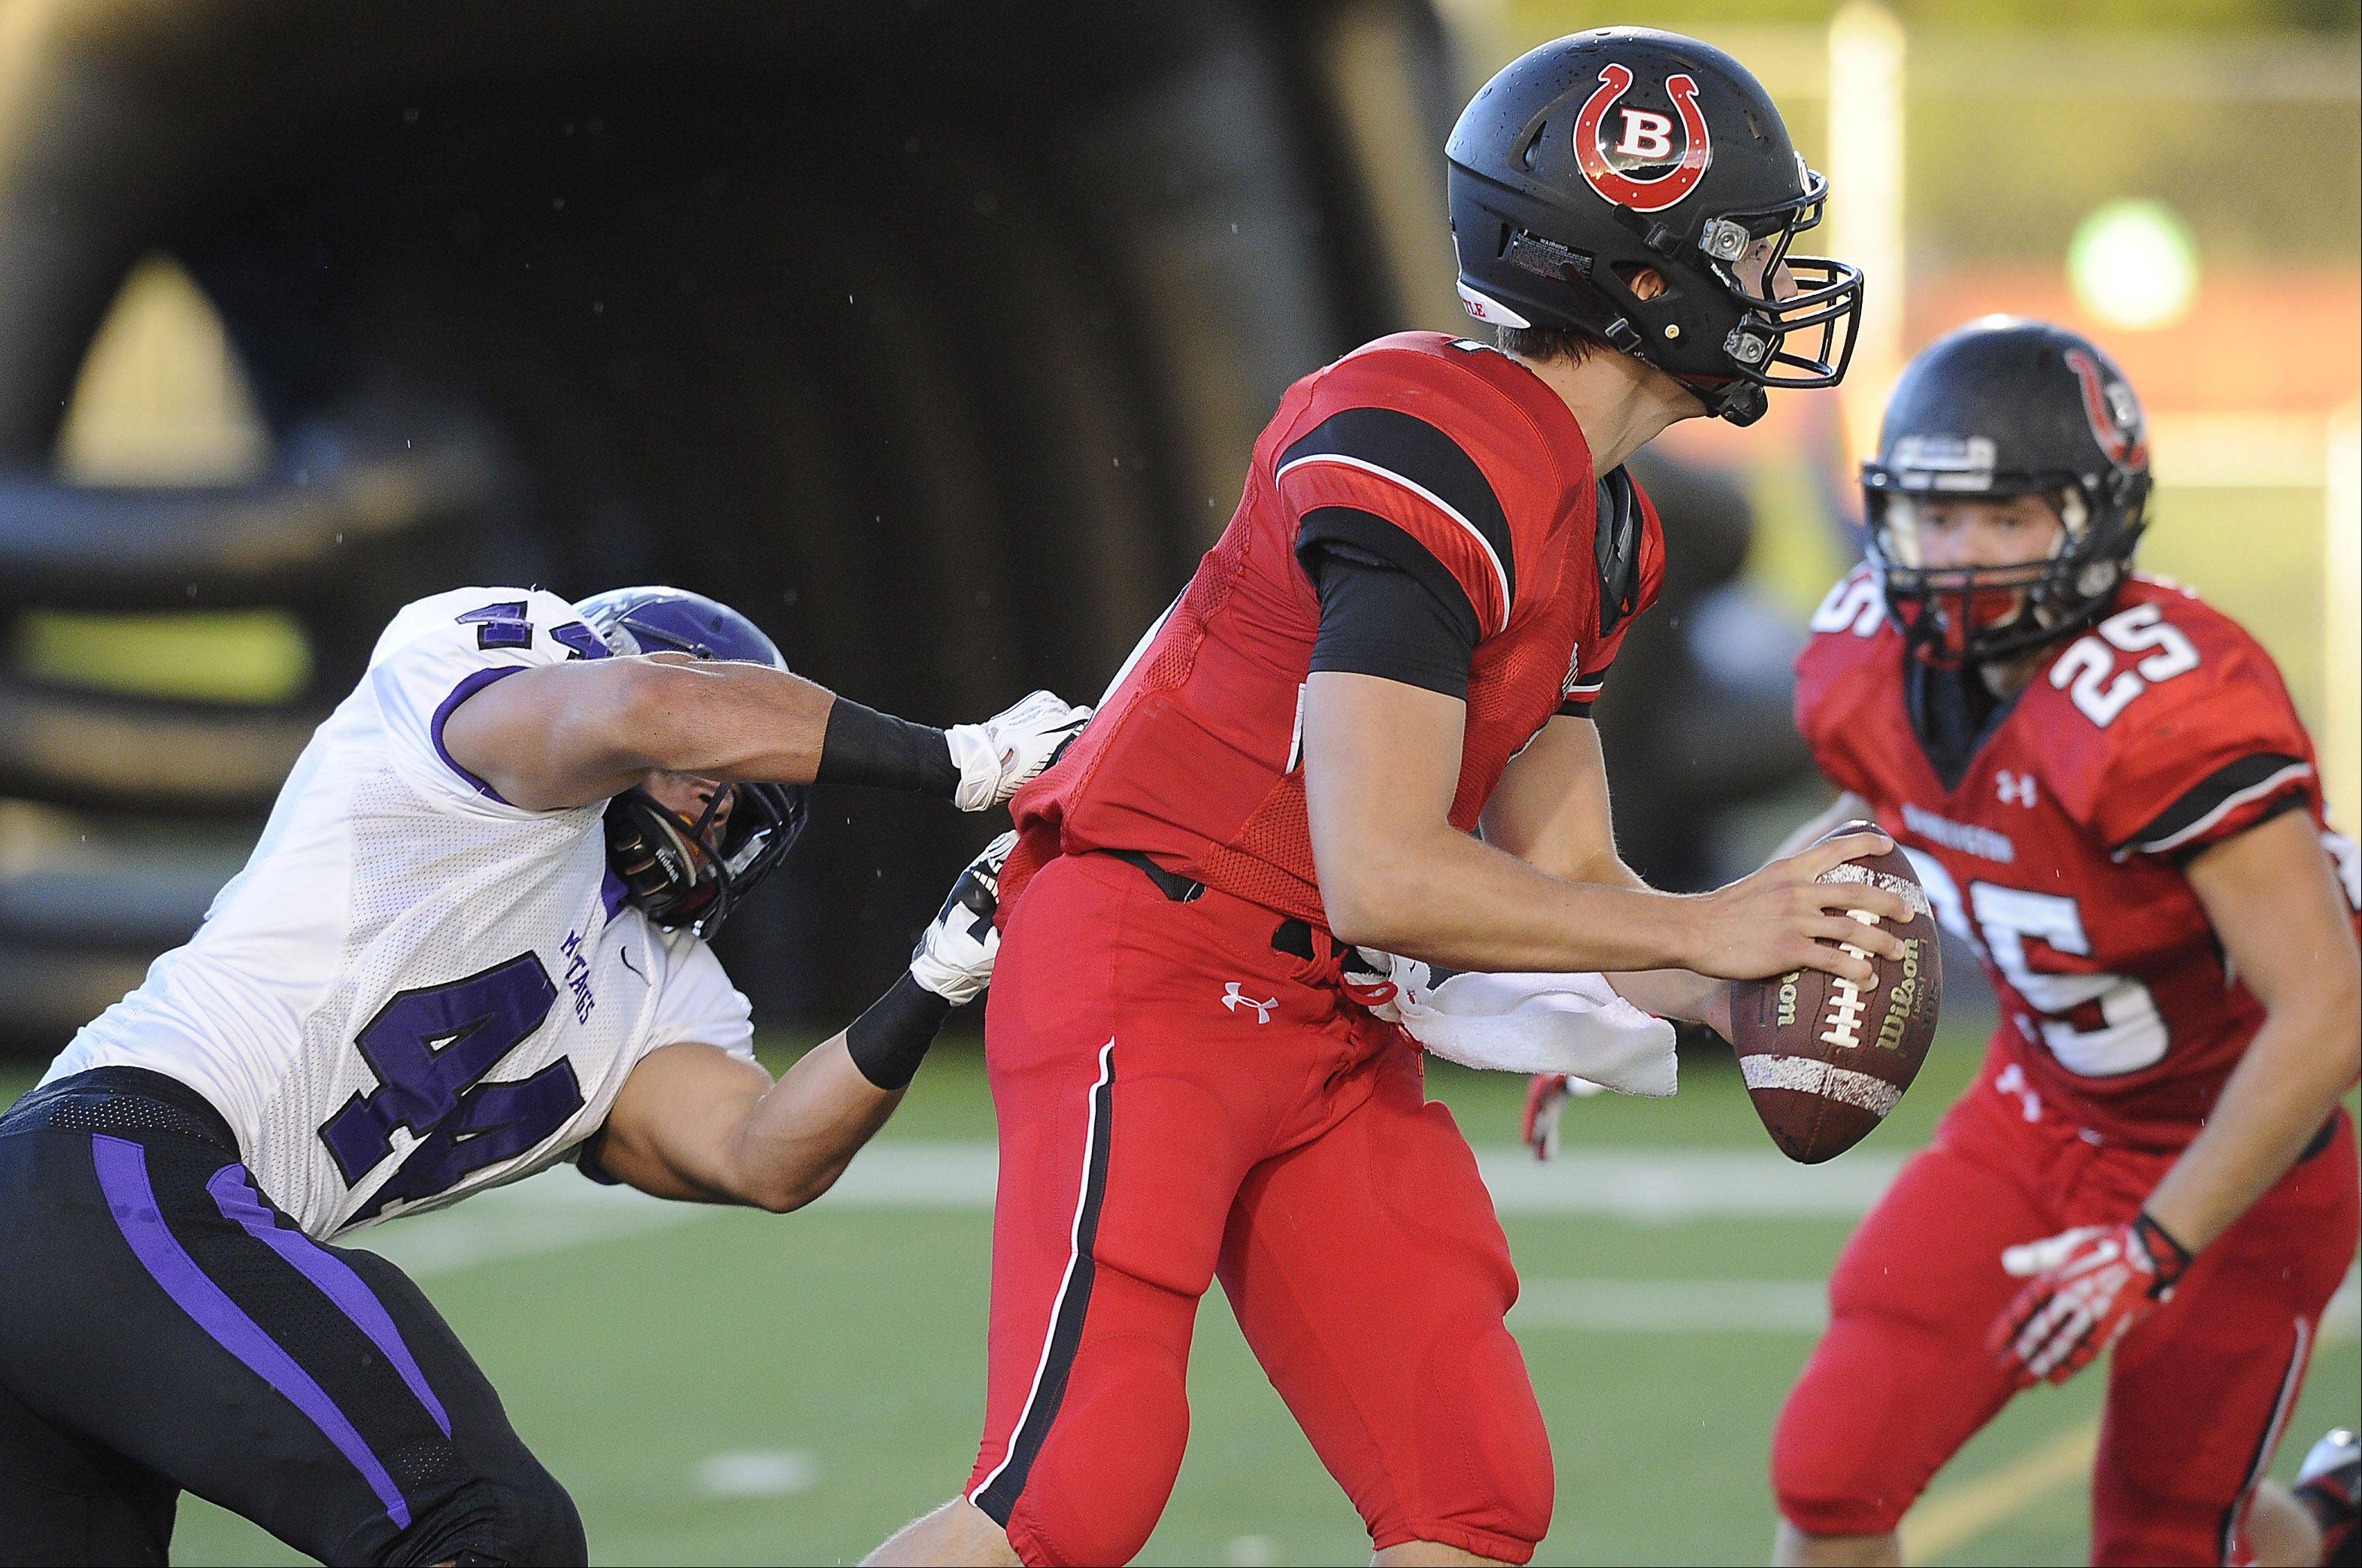 Rolling Meadows' Eddie Cardenas sacks Barrington quarterback Daniel Kubiuk in the first quarter.